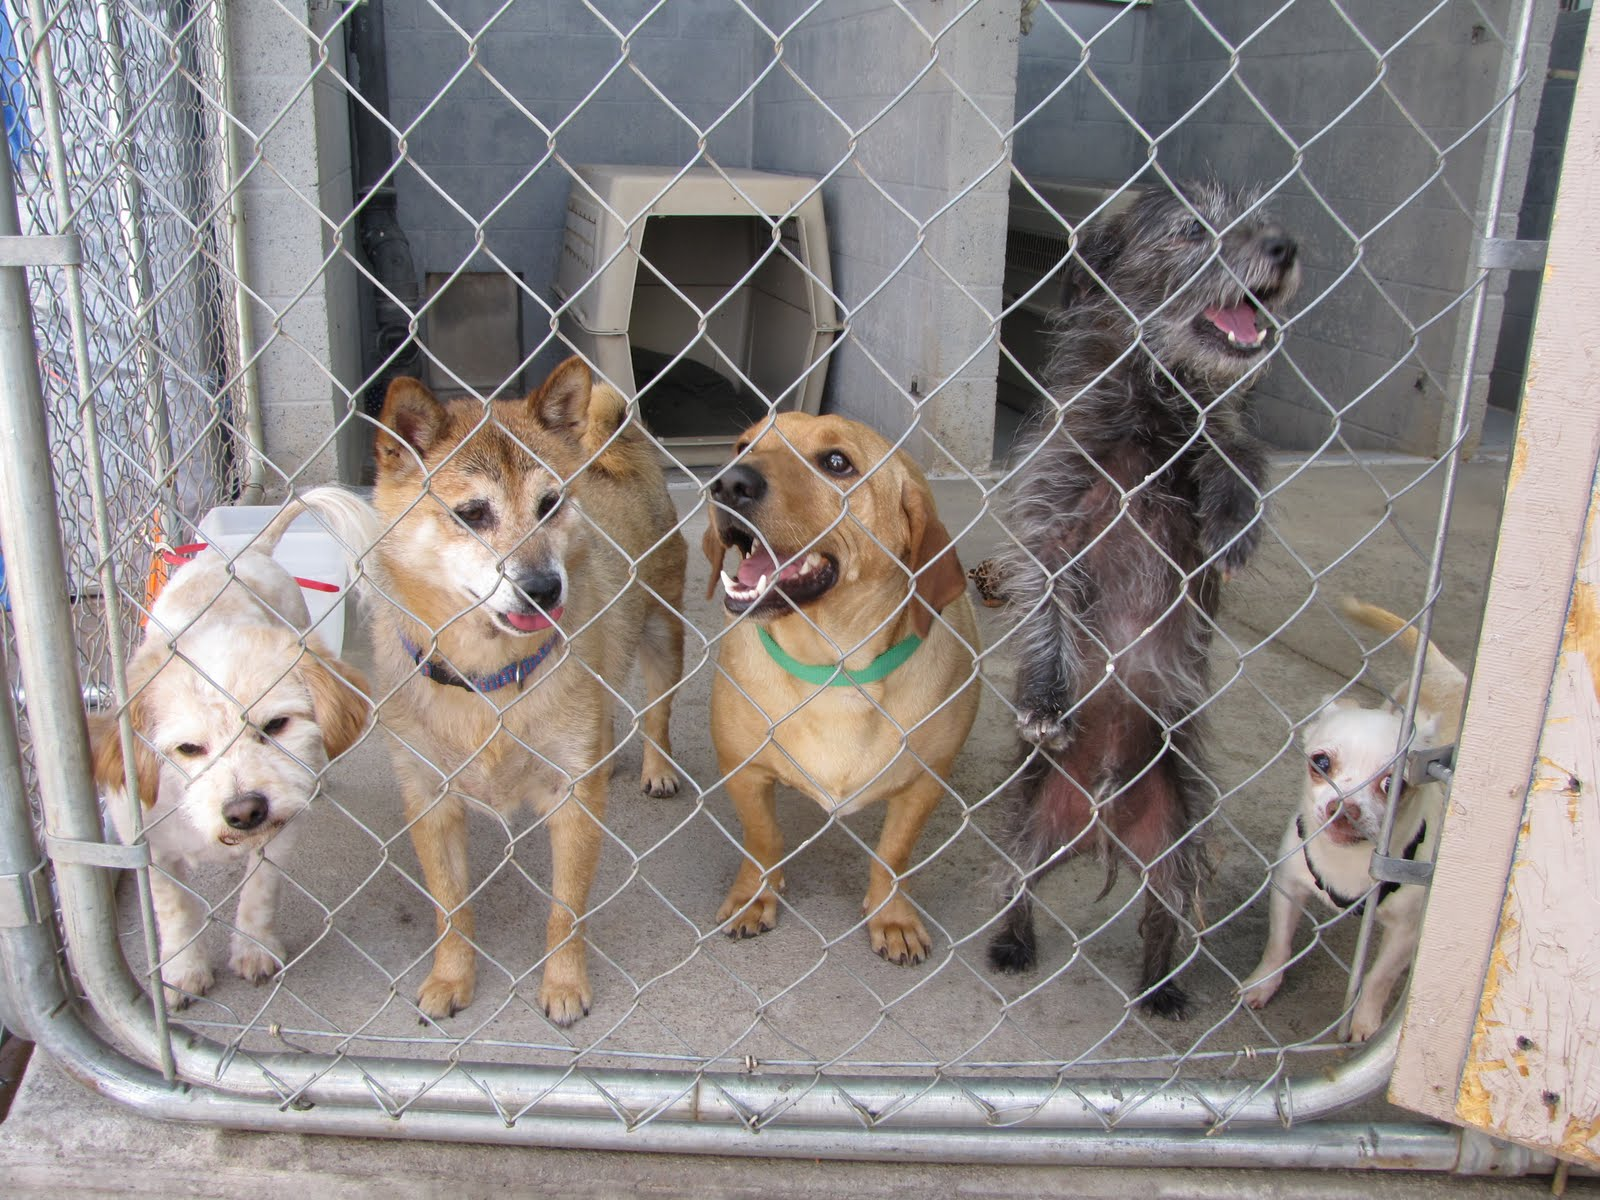 Best Animal Shelter : Top reasons to adopt your pet from an animal shelter